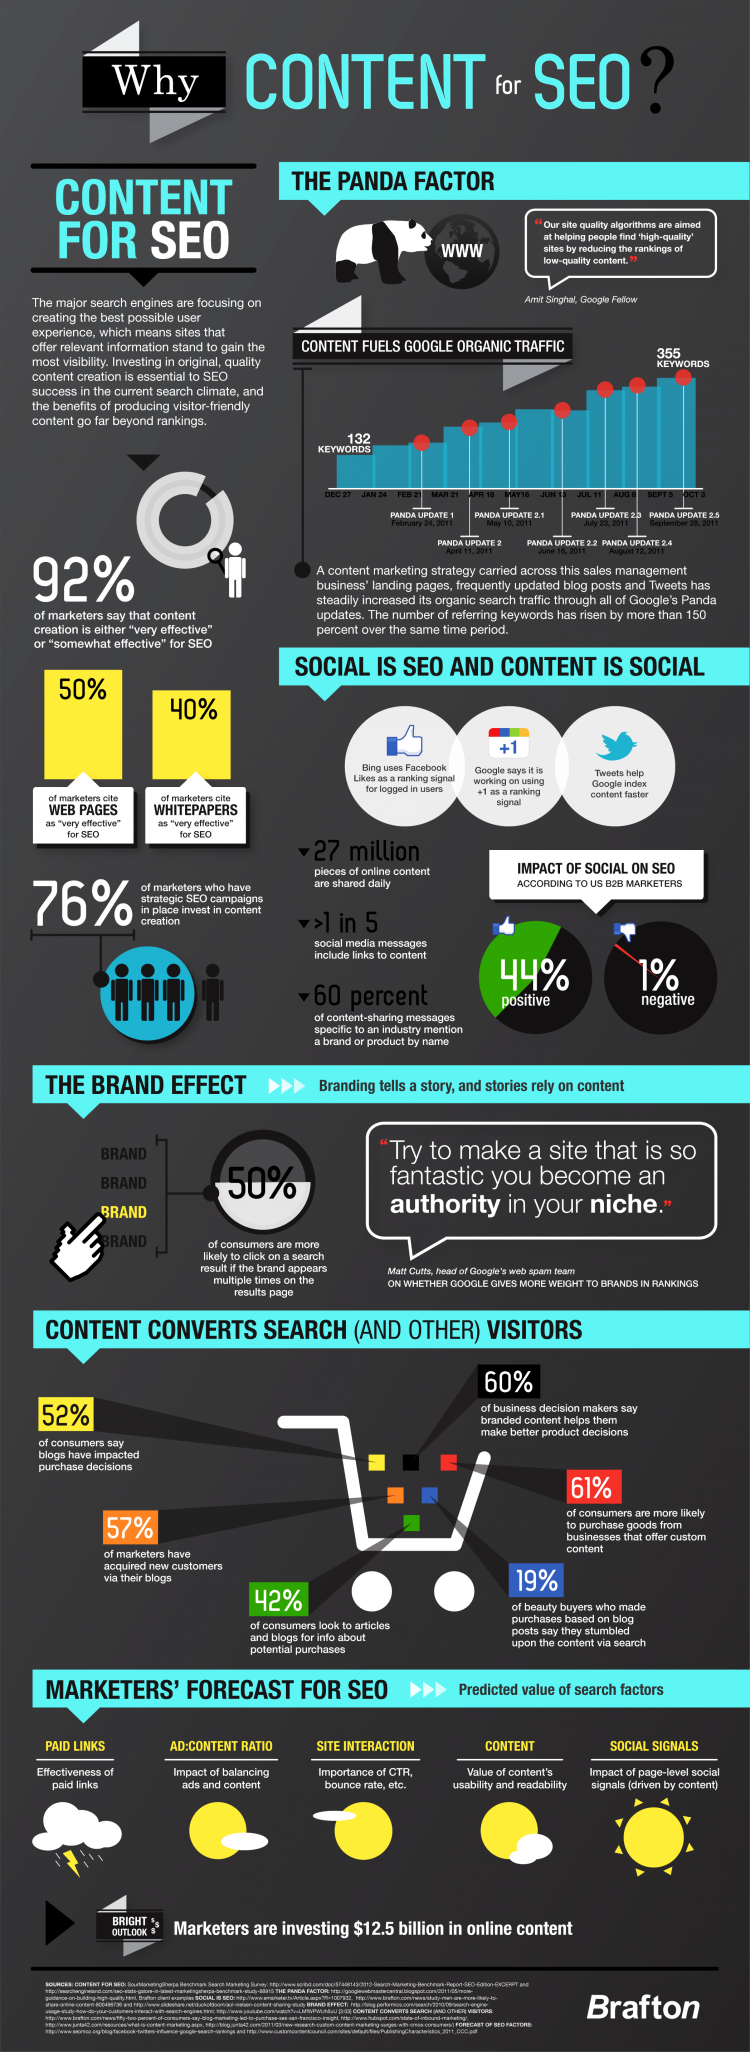 Content importance for SEO